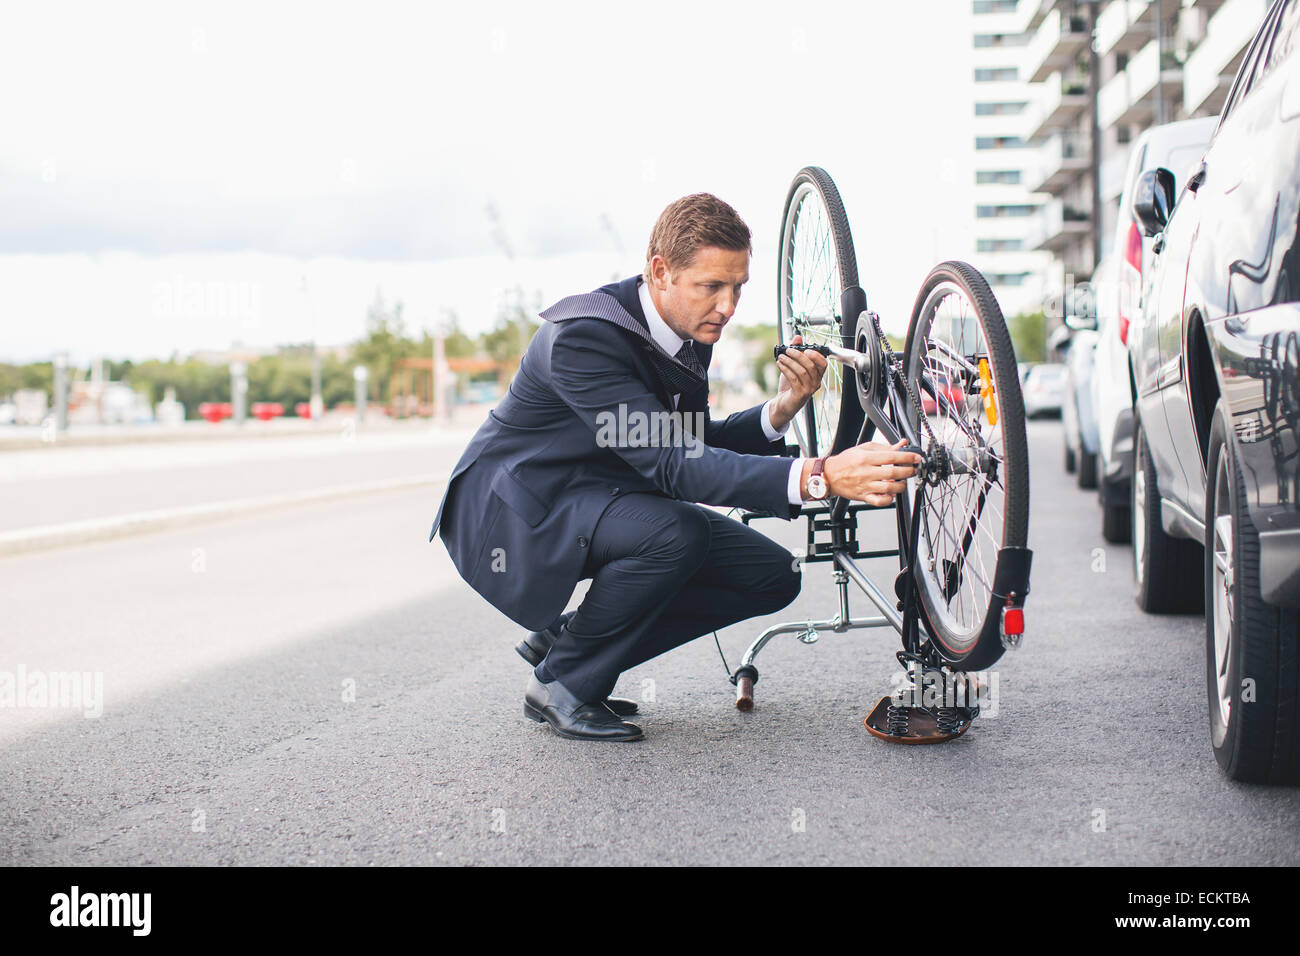 Businessman fixing bicycle chain on city street against sky - Stock Image